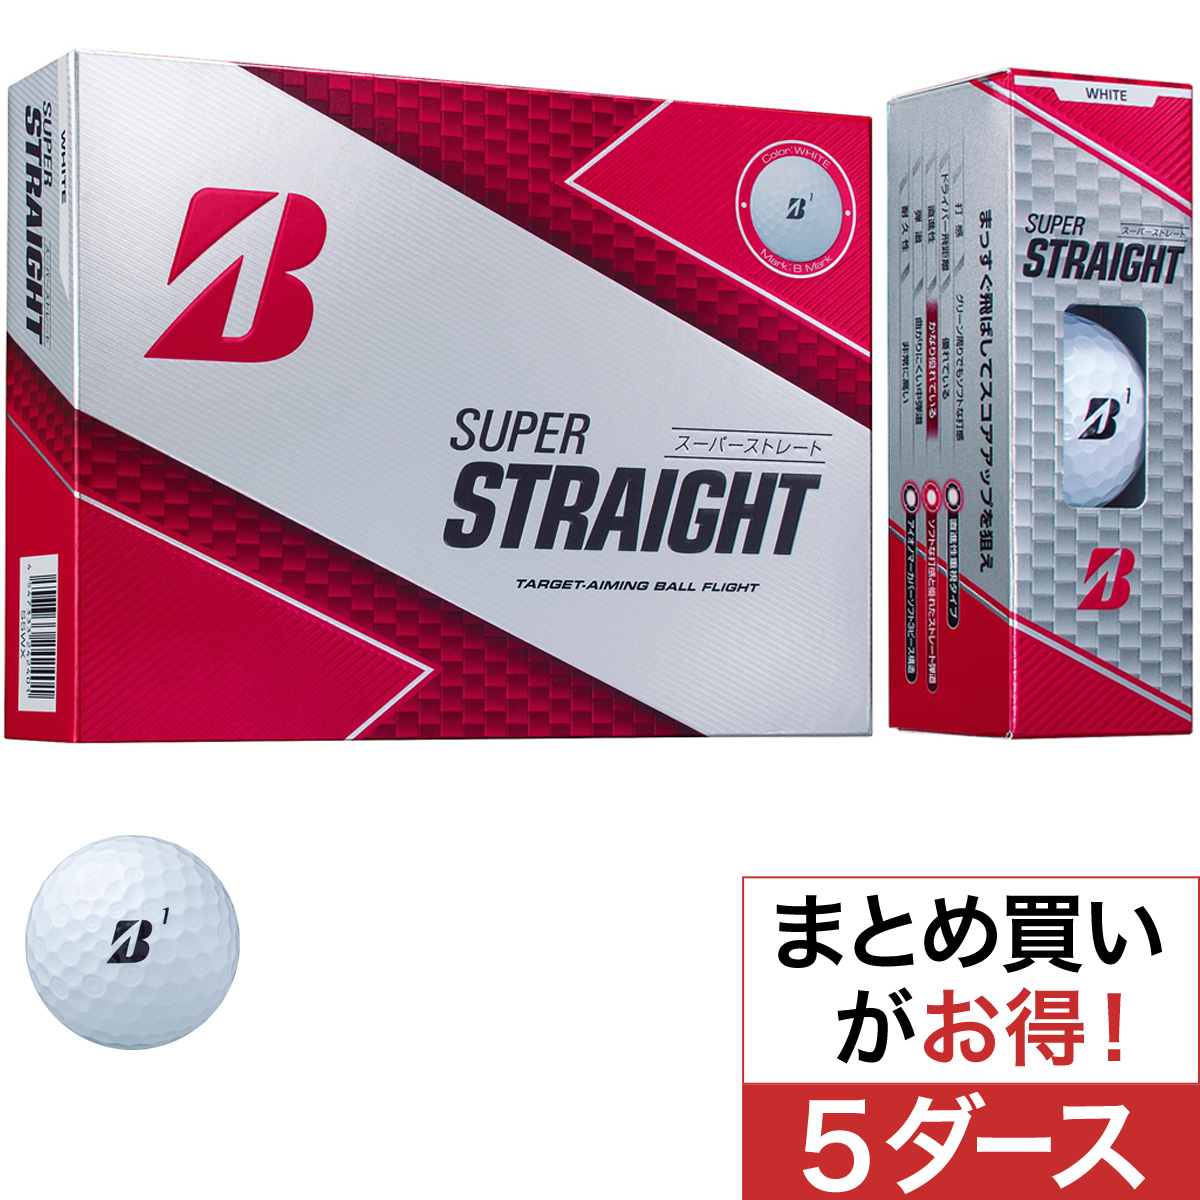 SUPER STRAIGHT ボール 5ダースセット